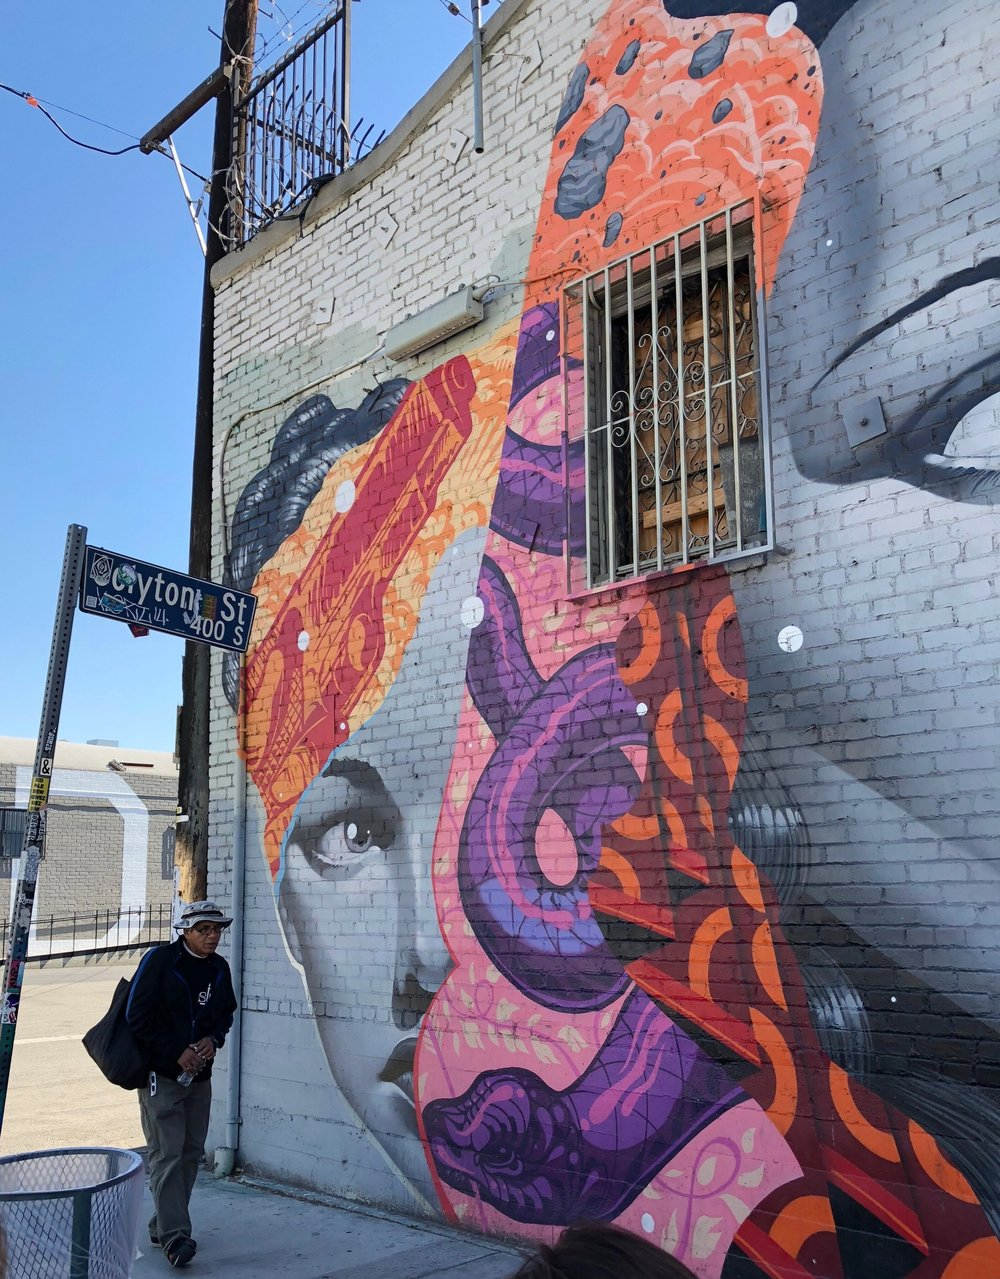 Our guide, Hector Calderon (aka Shandu One), is a pioneering LA street artist and served as our guide on the 2.5 hour tour.